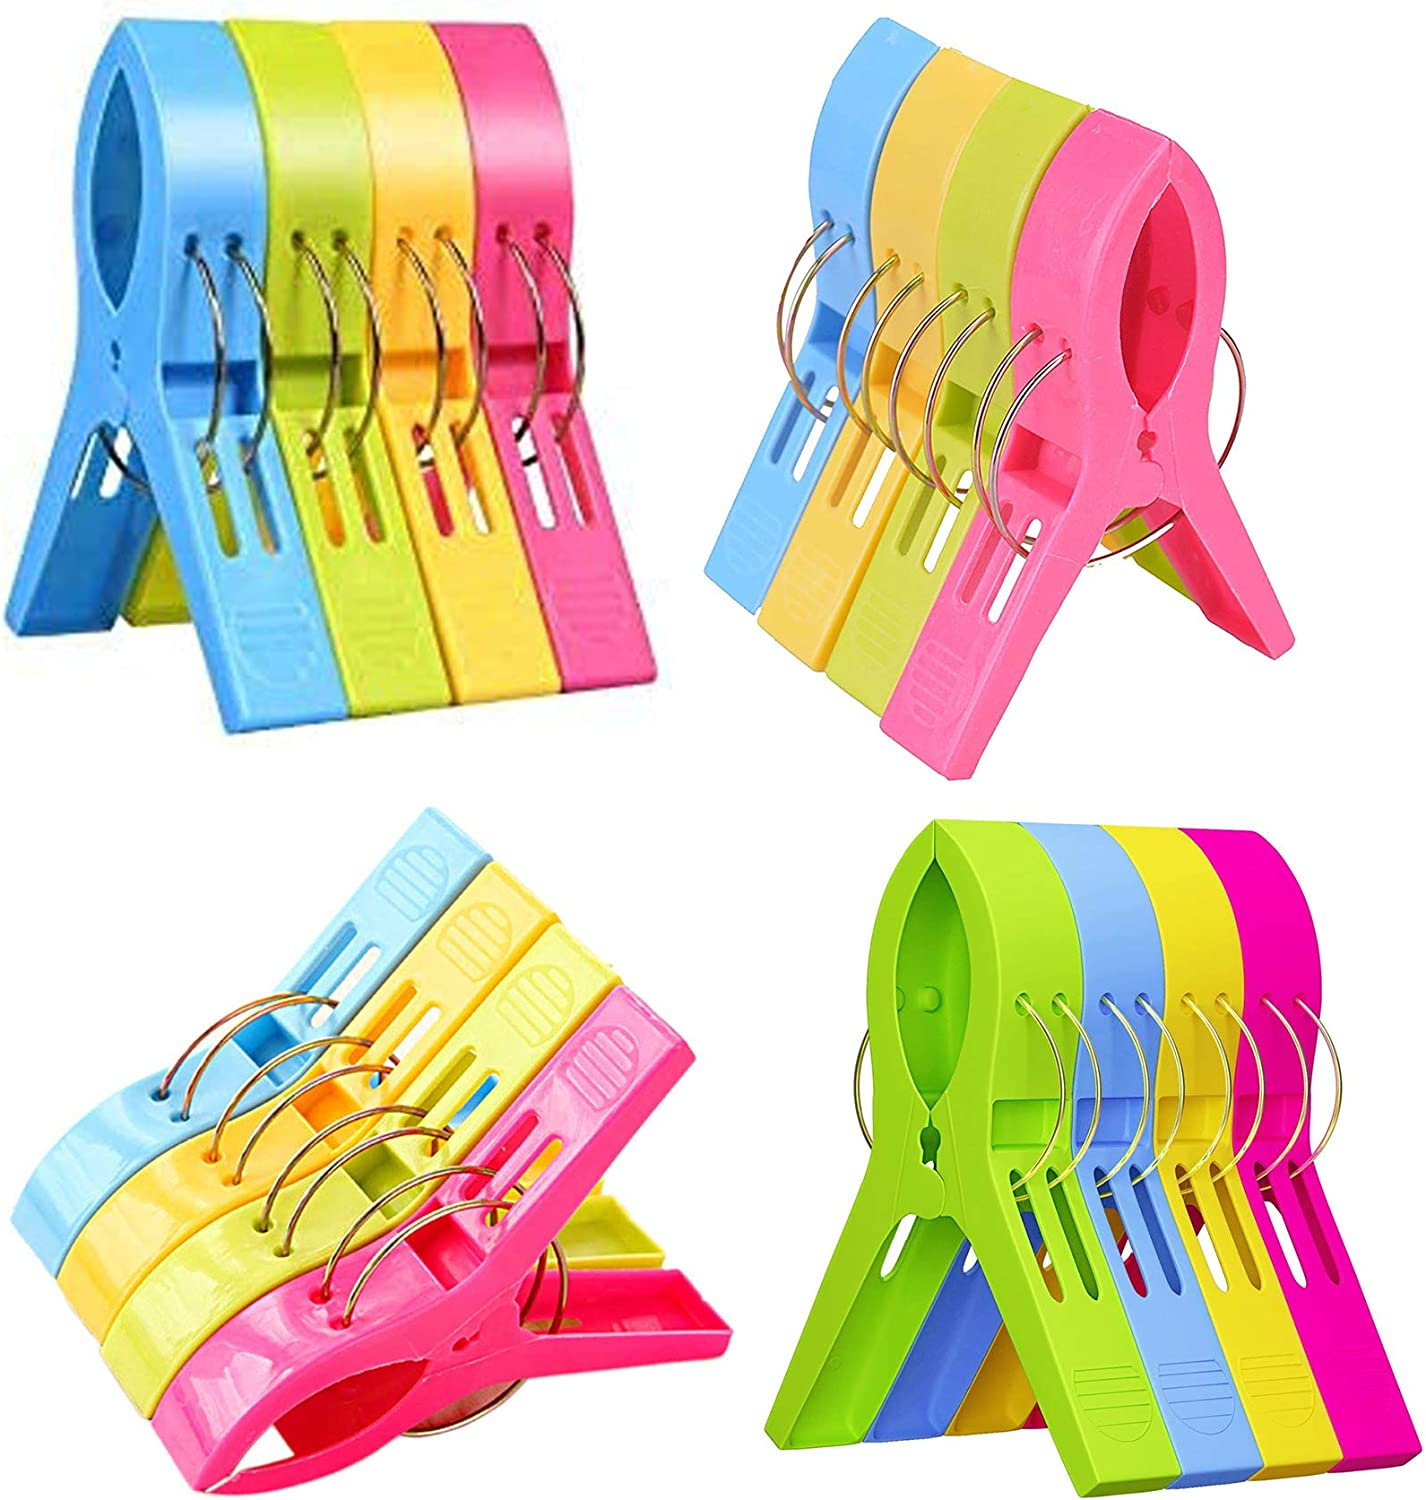 Yansanido 16 Pack Beach Towel Clips Chair Clips Towel Holder in Fun Bright Colors